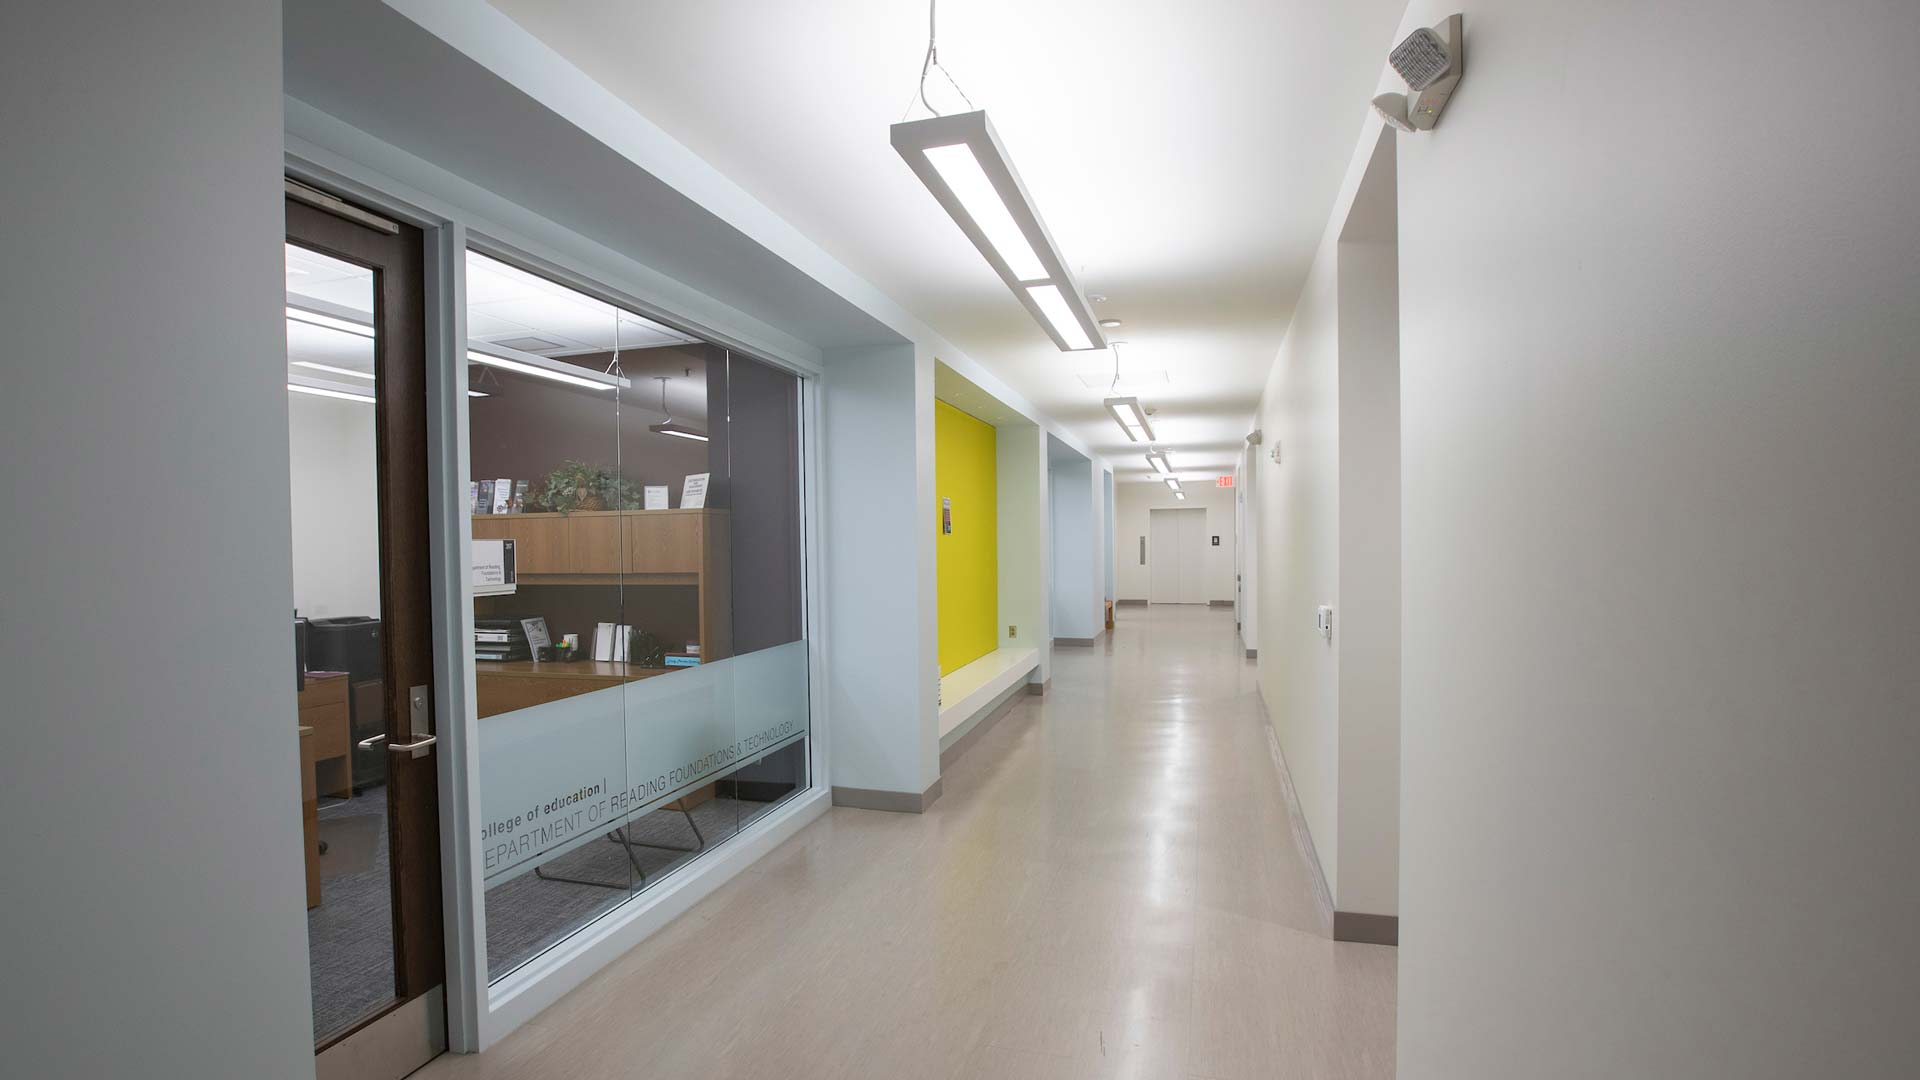 Hallway outside the department of reading, foundations and technology